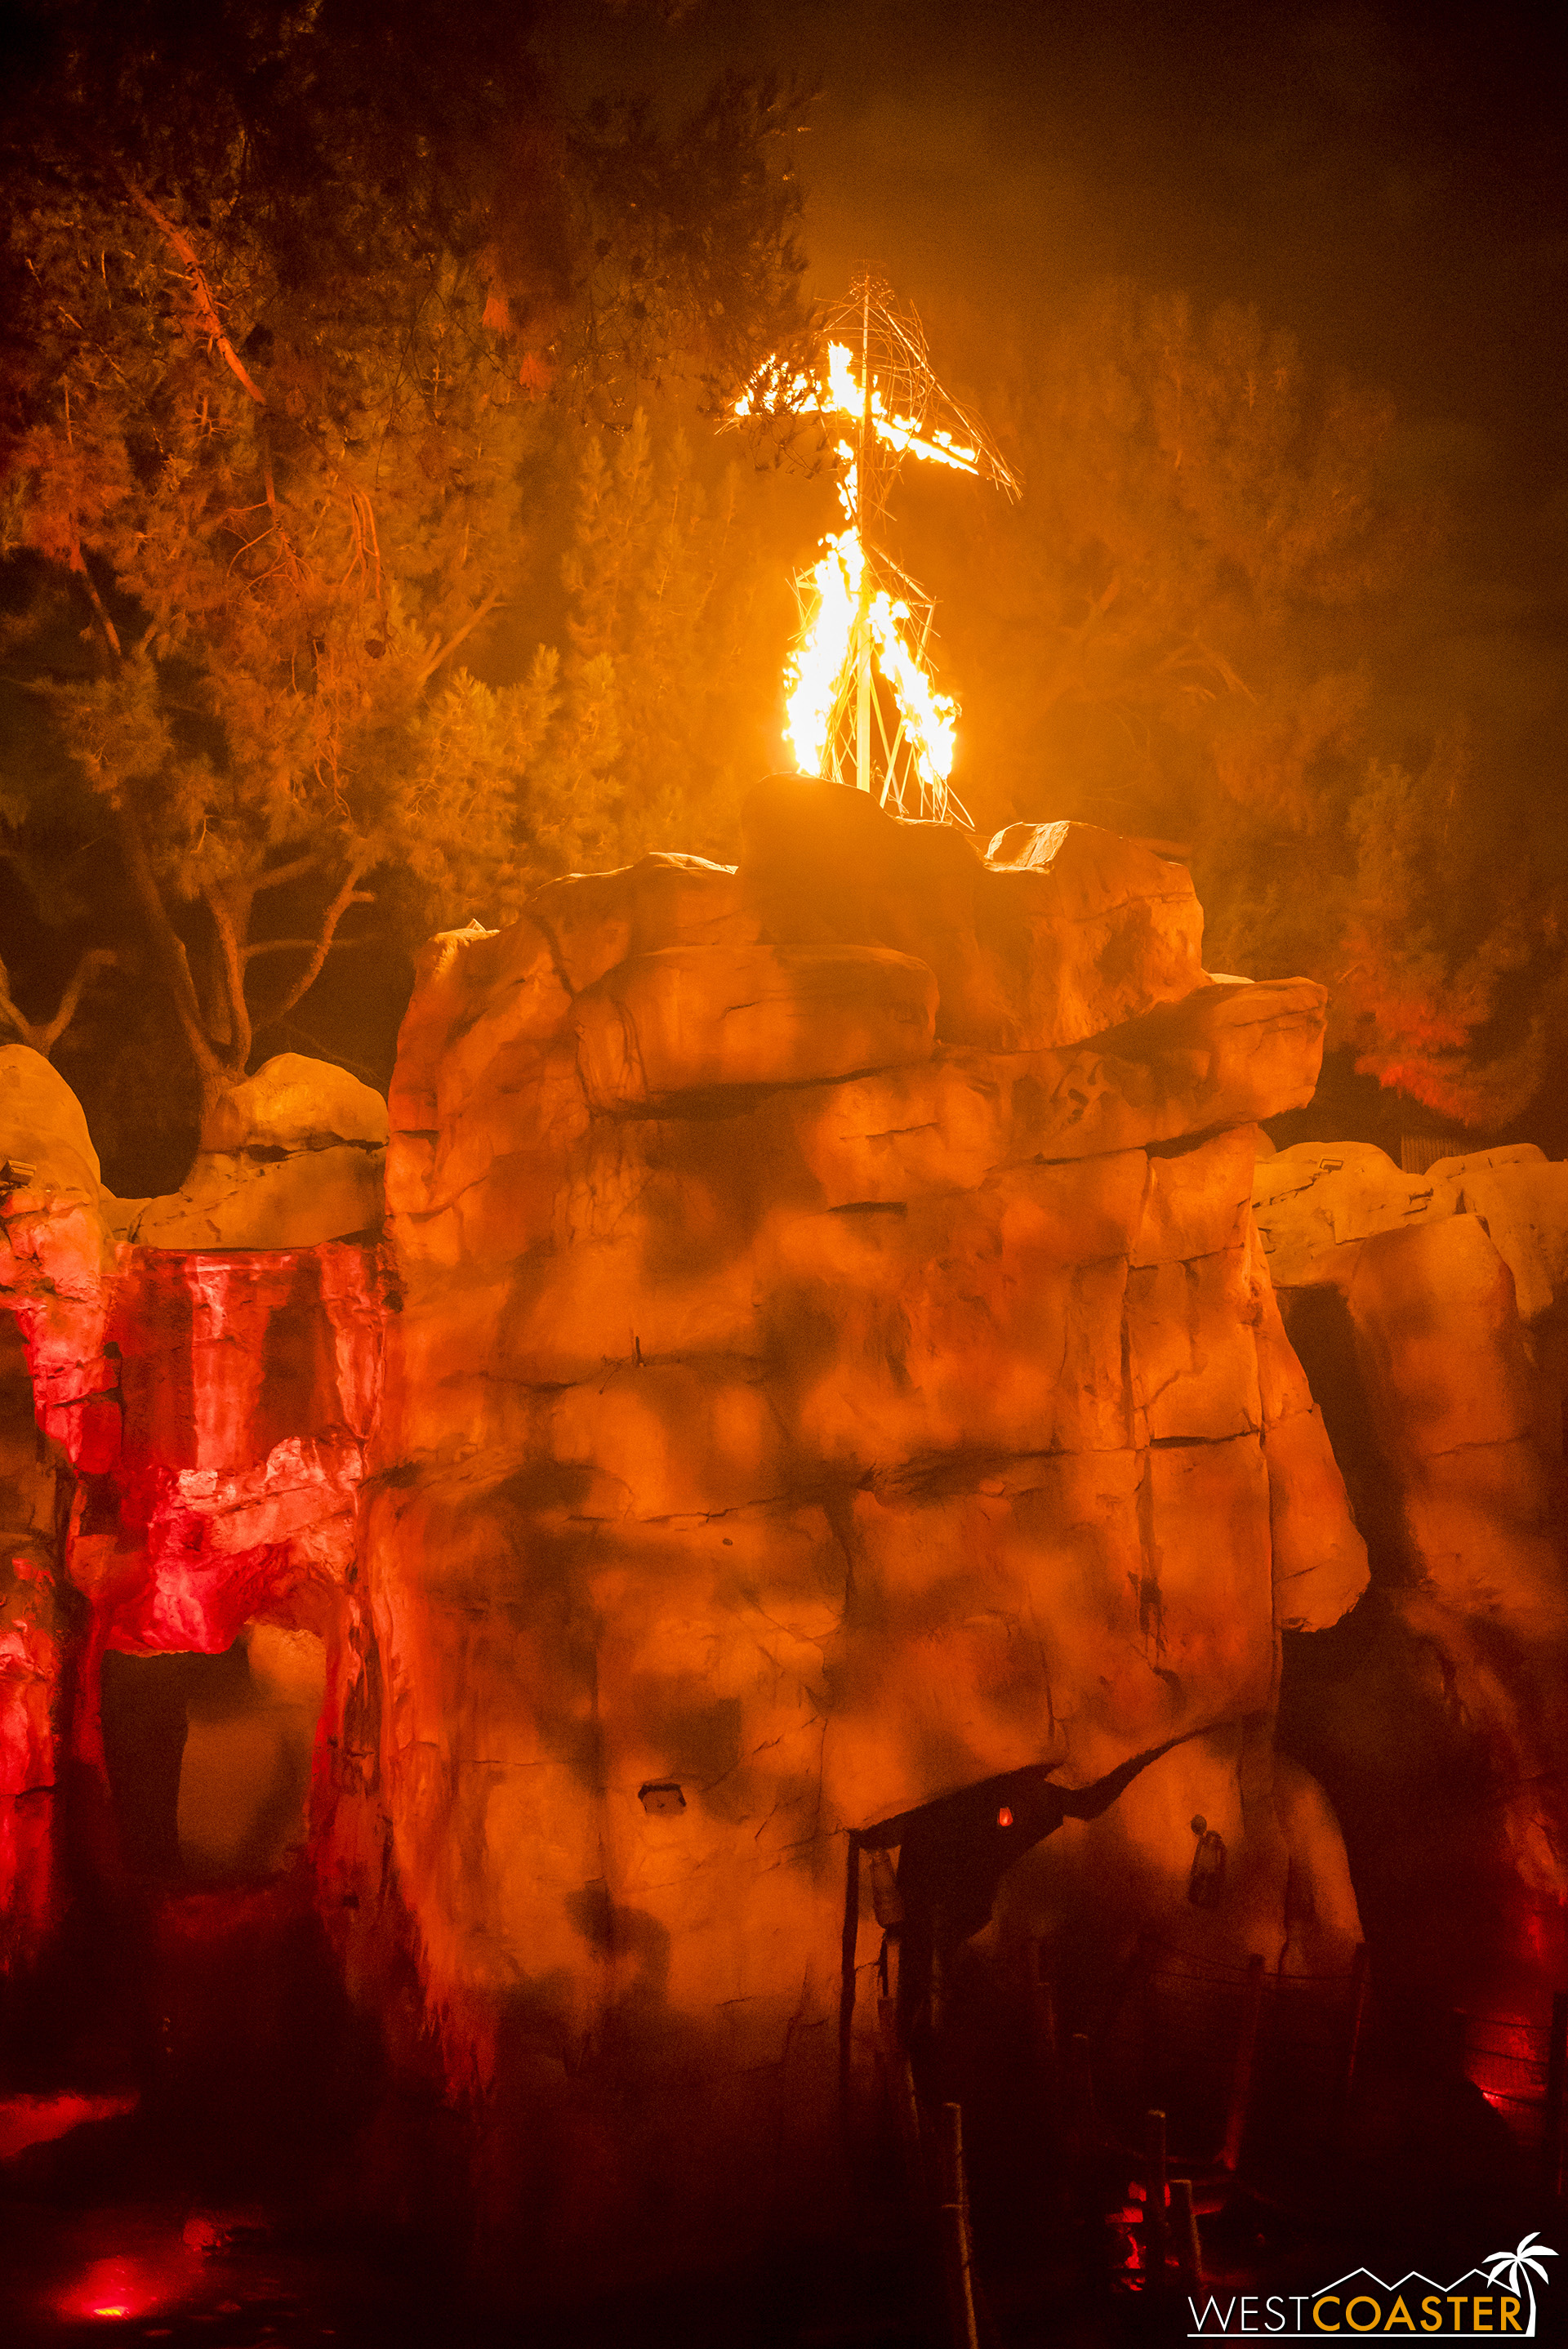 And the Wicker Man burns…